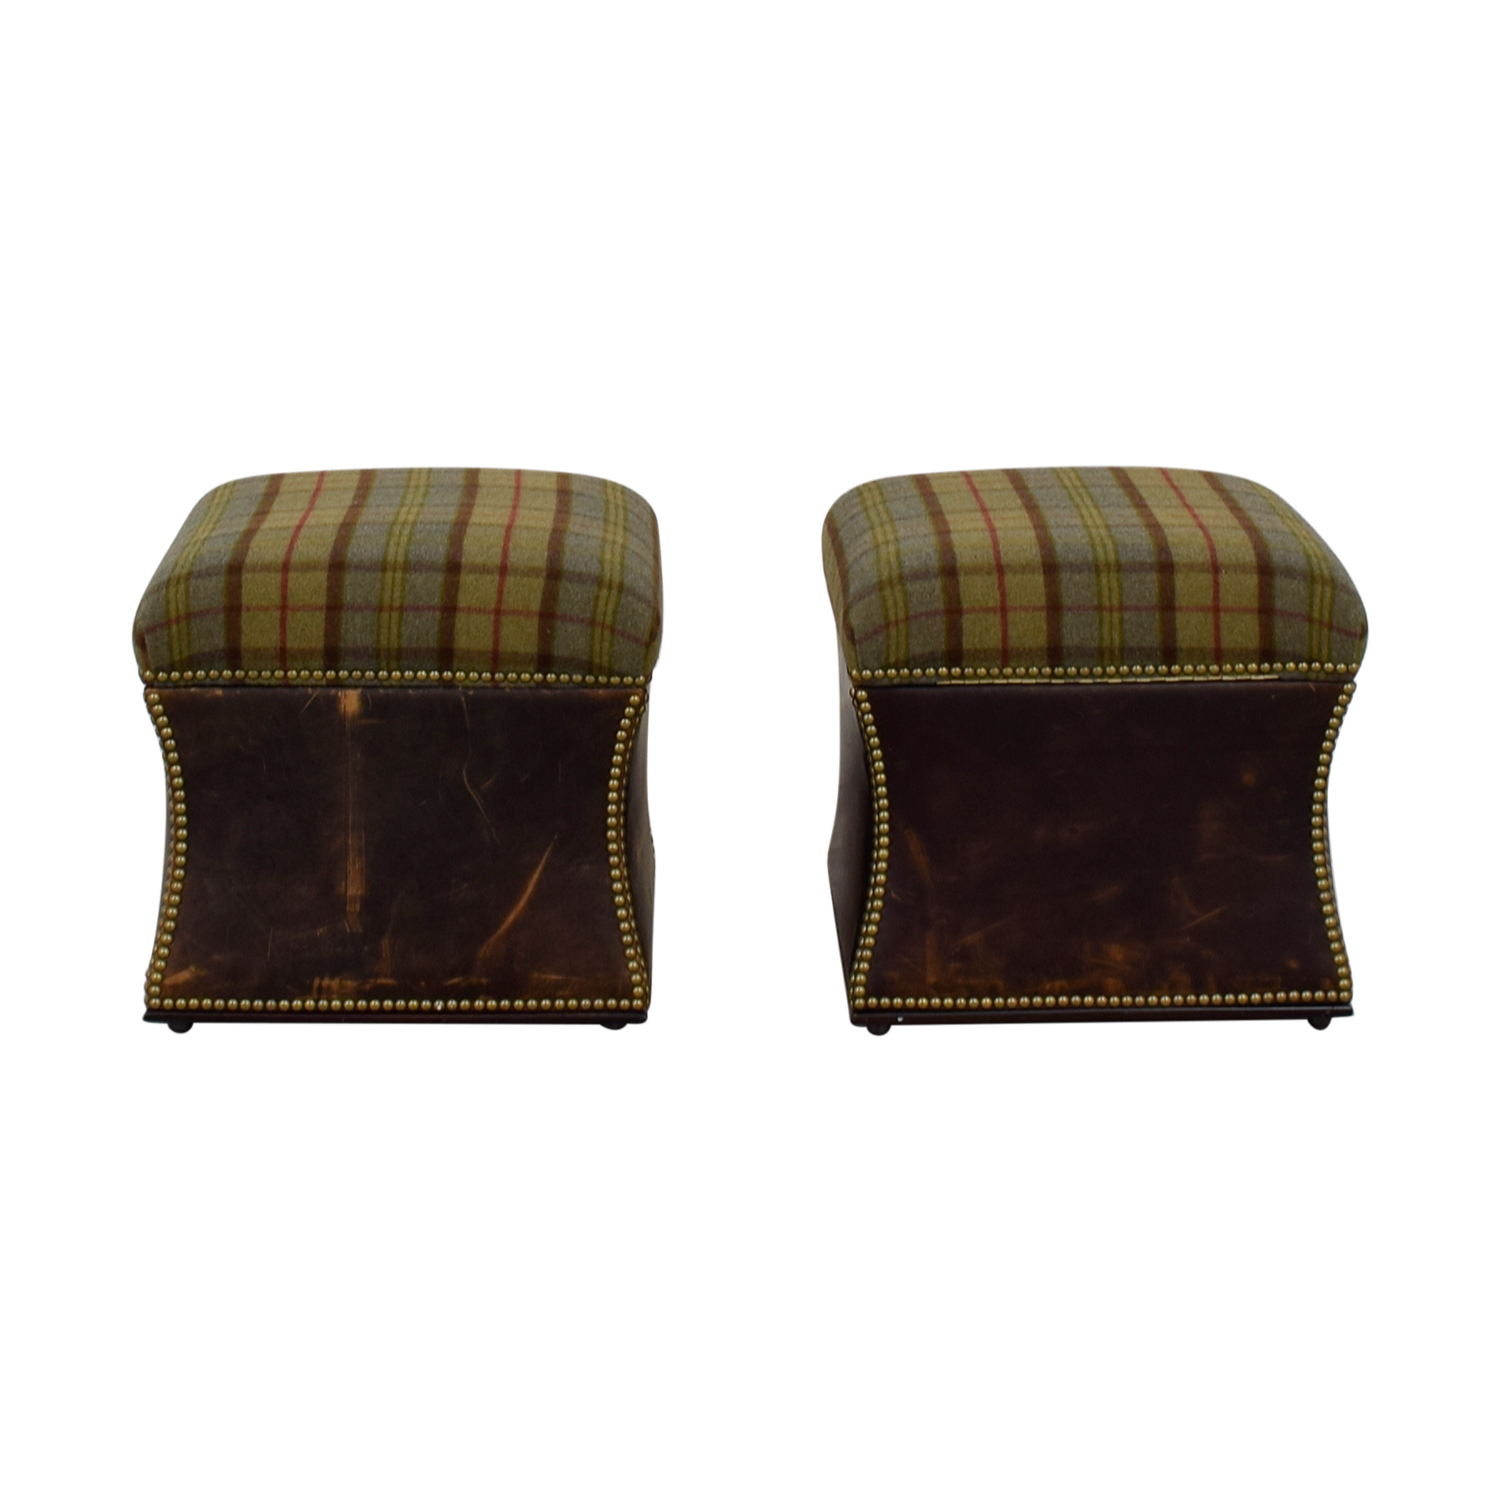 buy Ralph Lauren Tartan Plaid Nailhead Ottomans Ralph Lauren Sofas